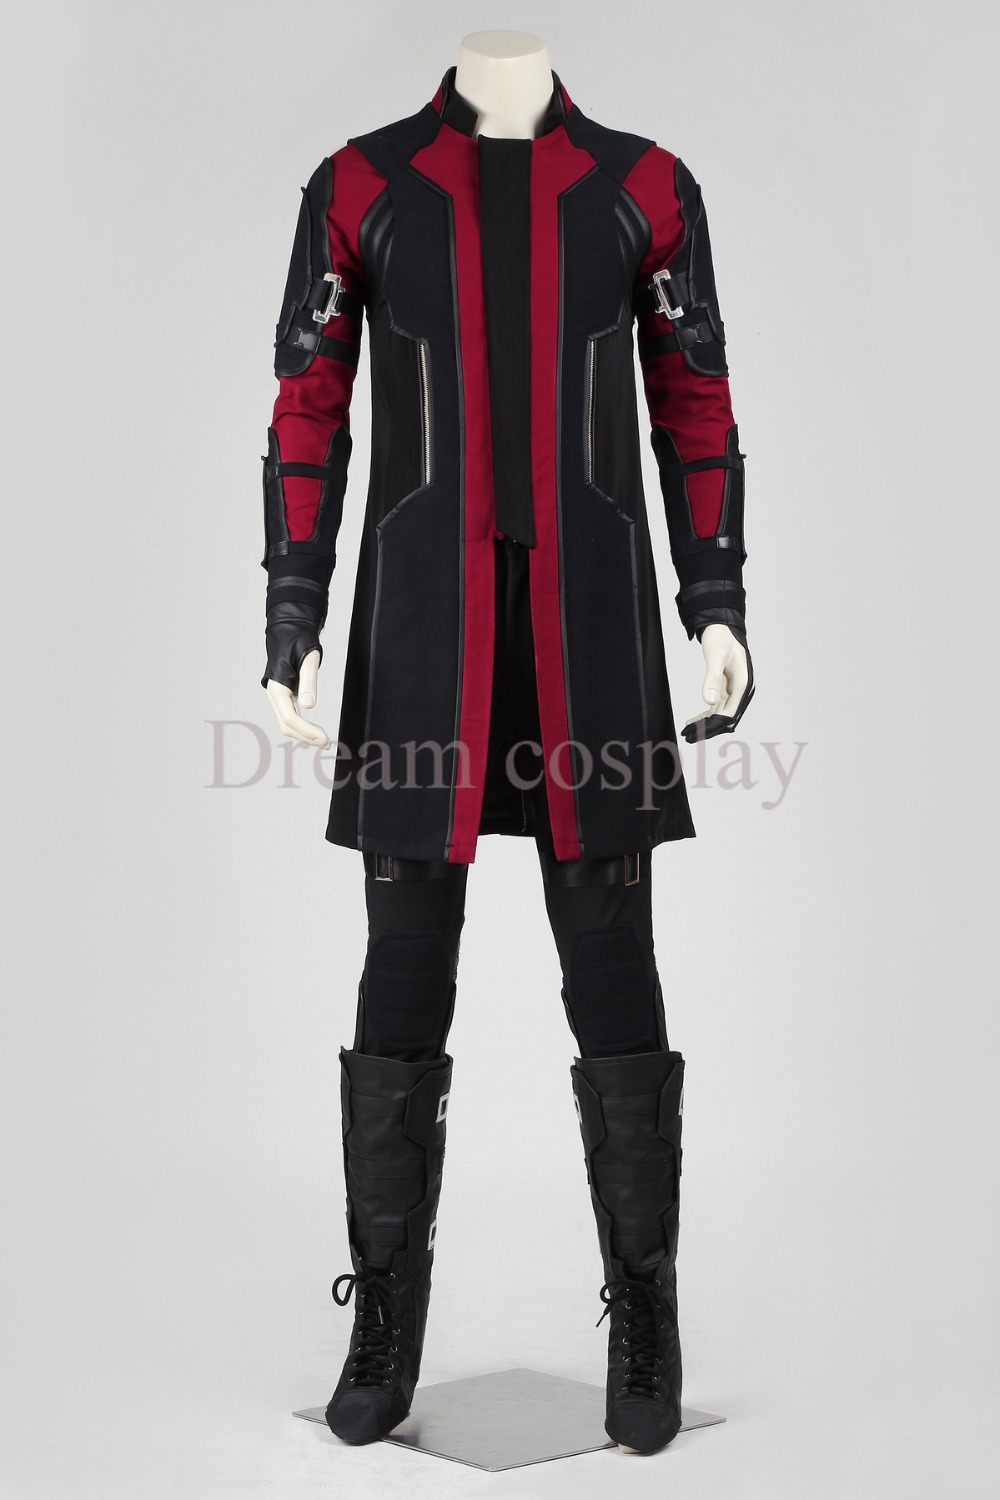 Online Get Cheap Hawkeye Costume Adult -Aliexpress.com | Alibaba Group